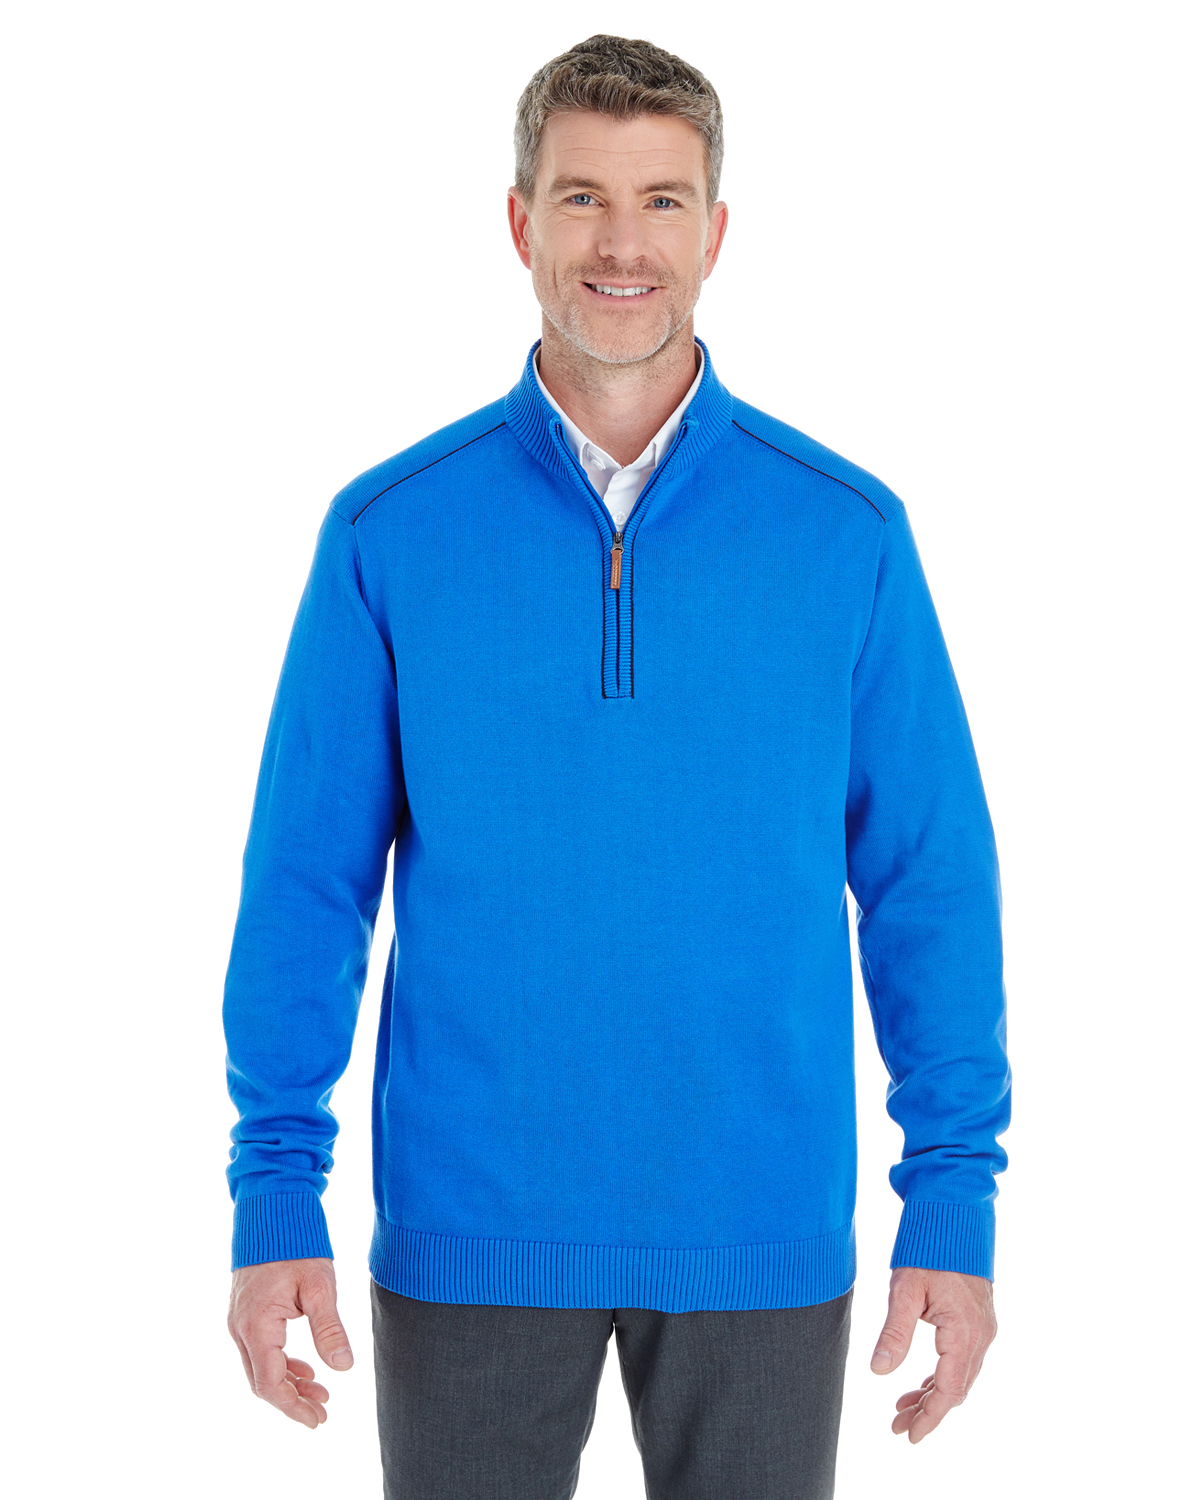 Men's Manchester Fully-Fashioned Quarter-Zip Sweater - Logo Masters International, Embroidery, Screen Printing